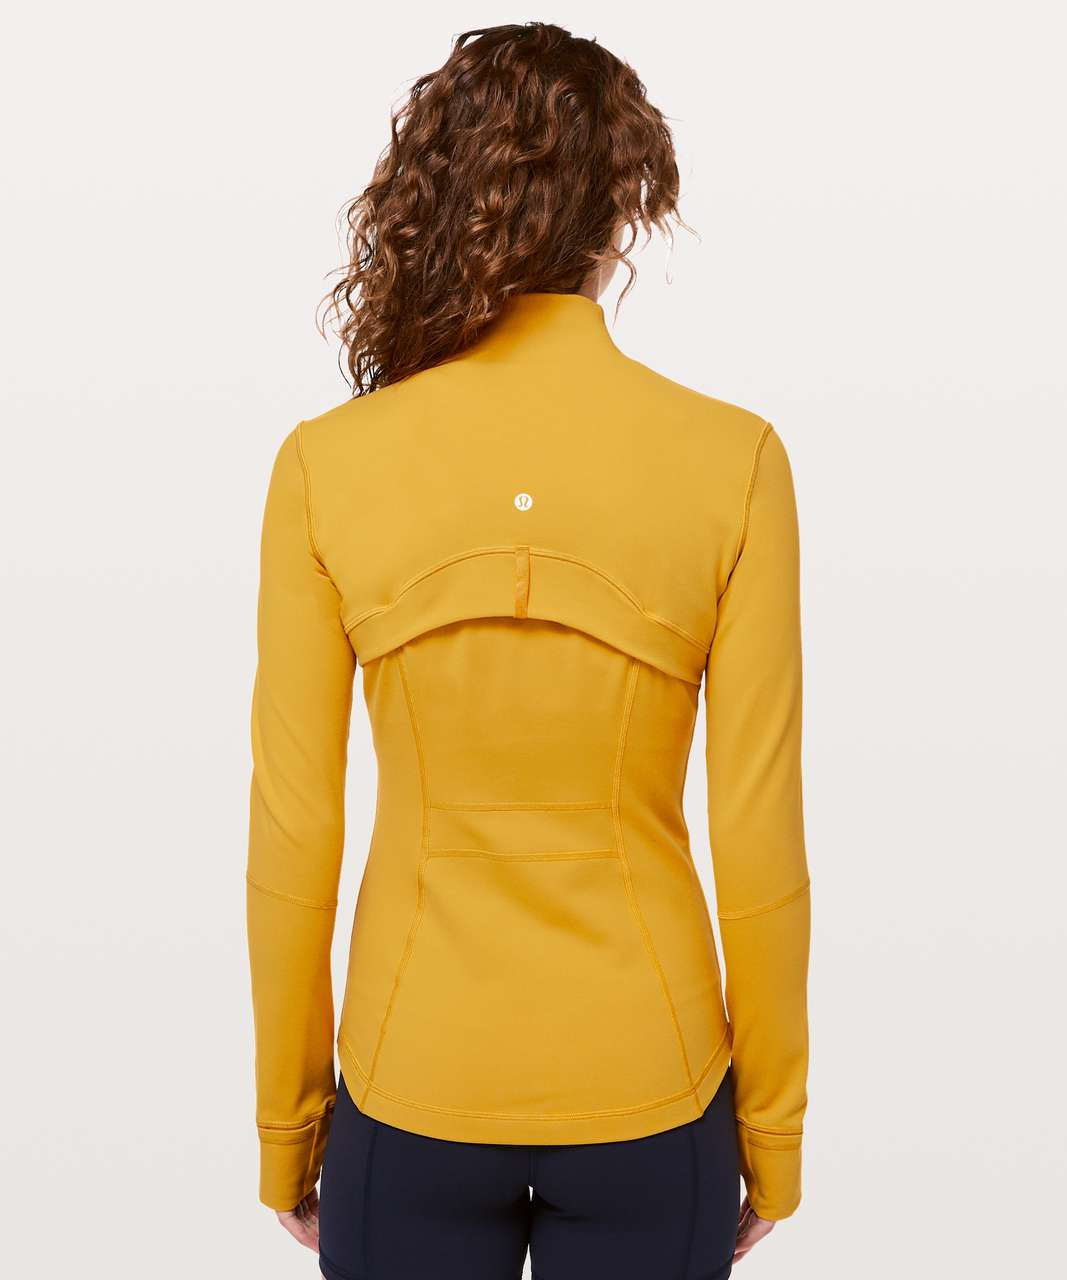 Lululemon Define Jacket - Honey Lemon